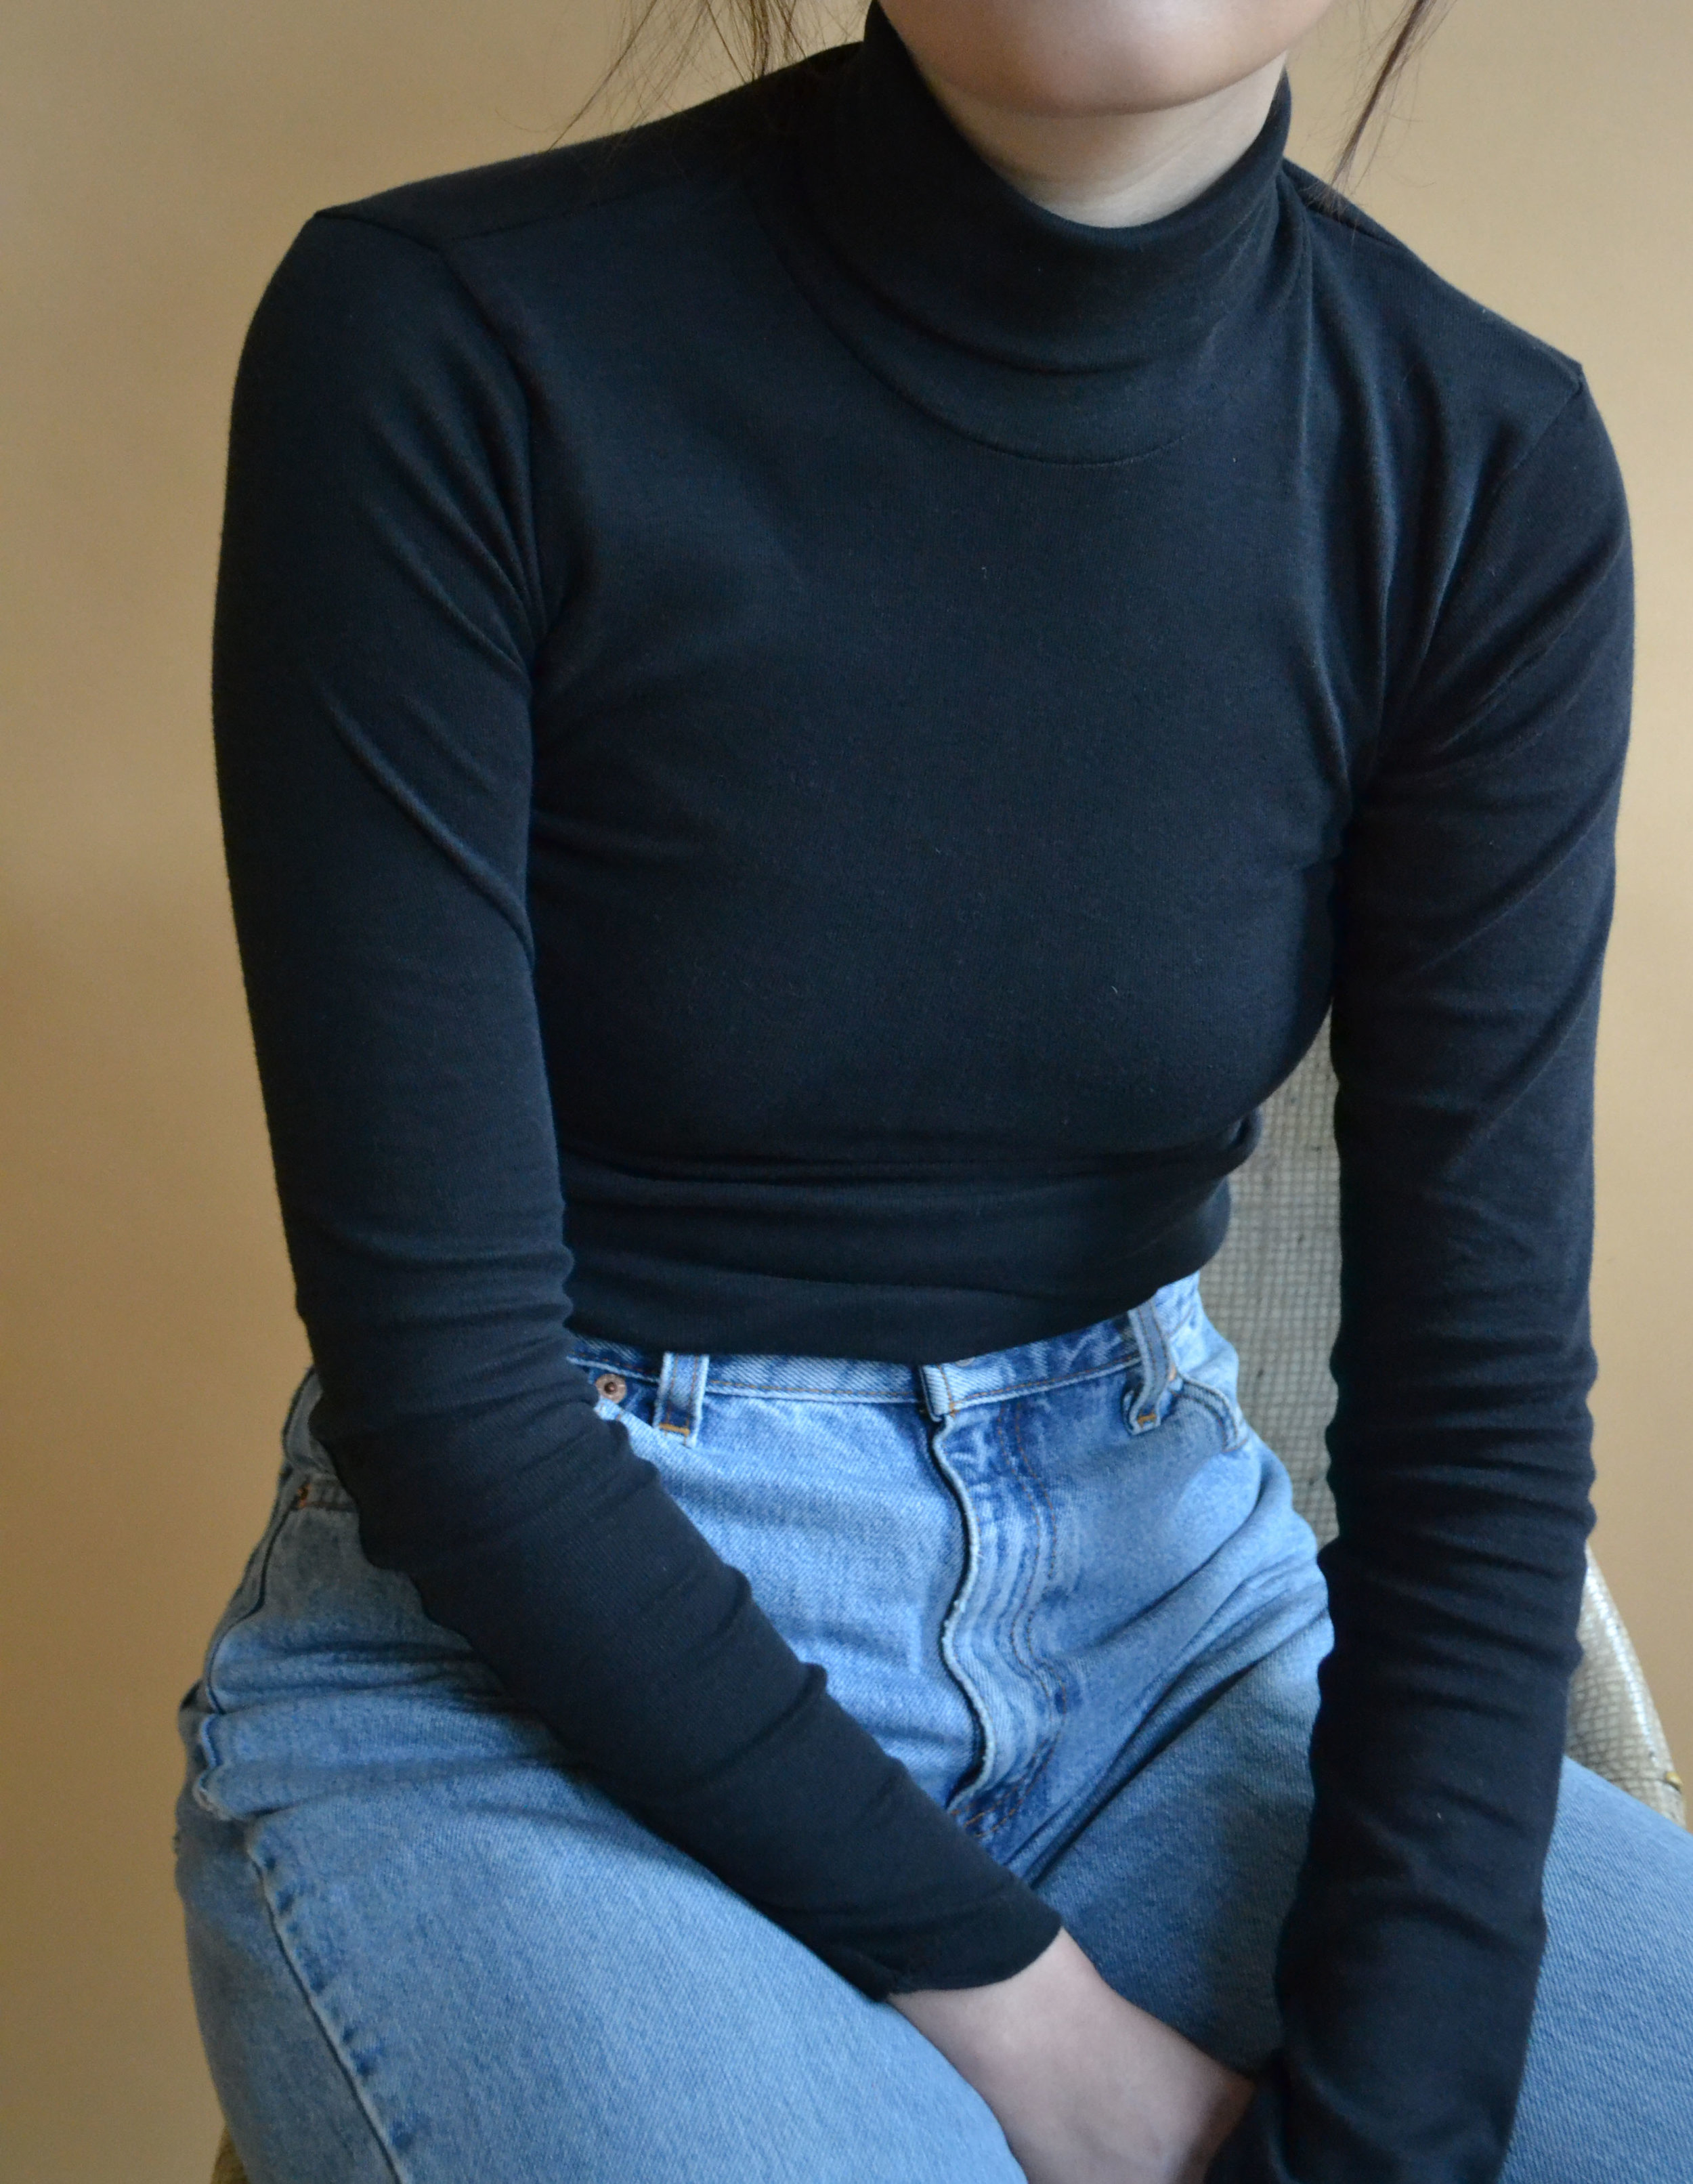 The Fitted Turtleneck | $45